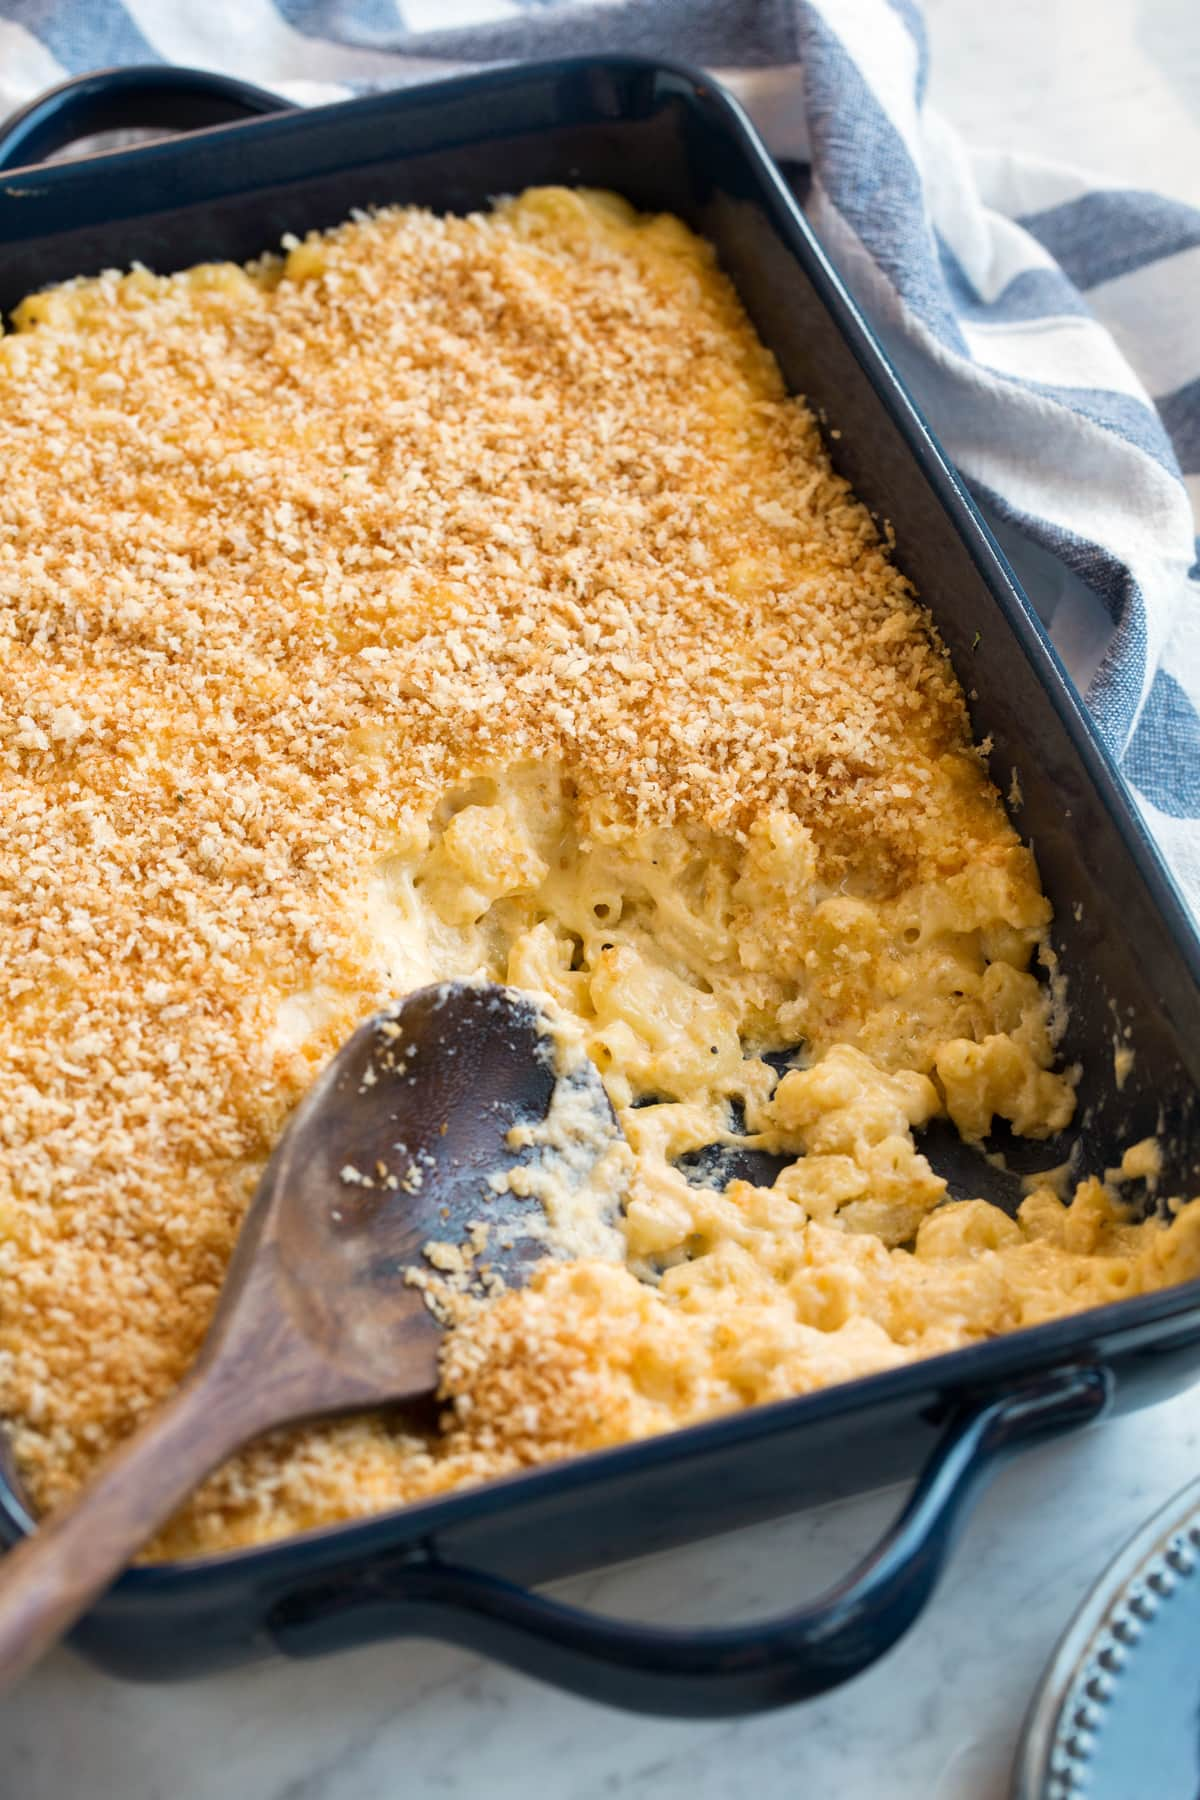 Baked macaroni in a casserole dish with a few scoops removed to show creamy cheesy macaroni noodles.